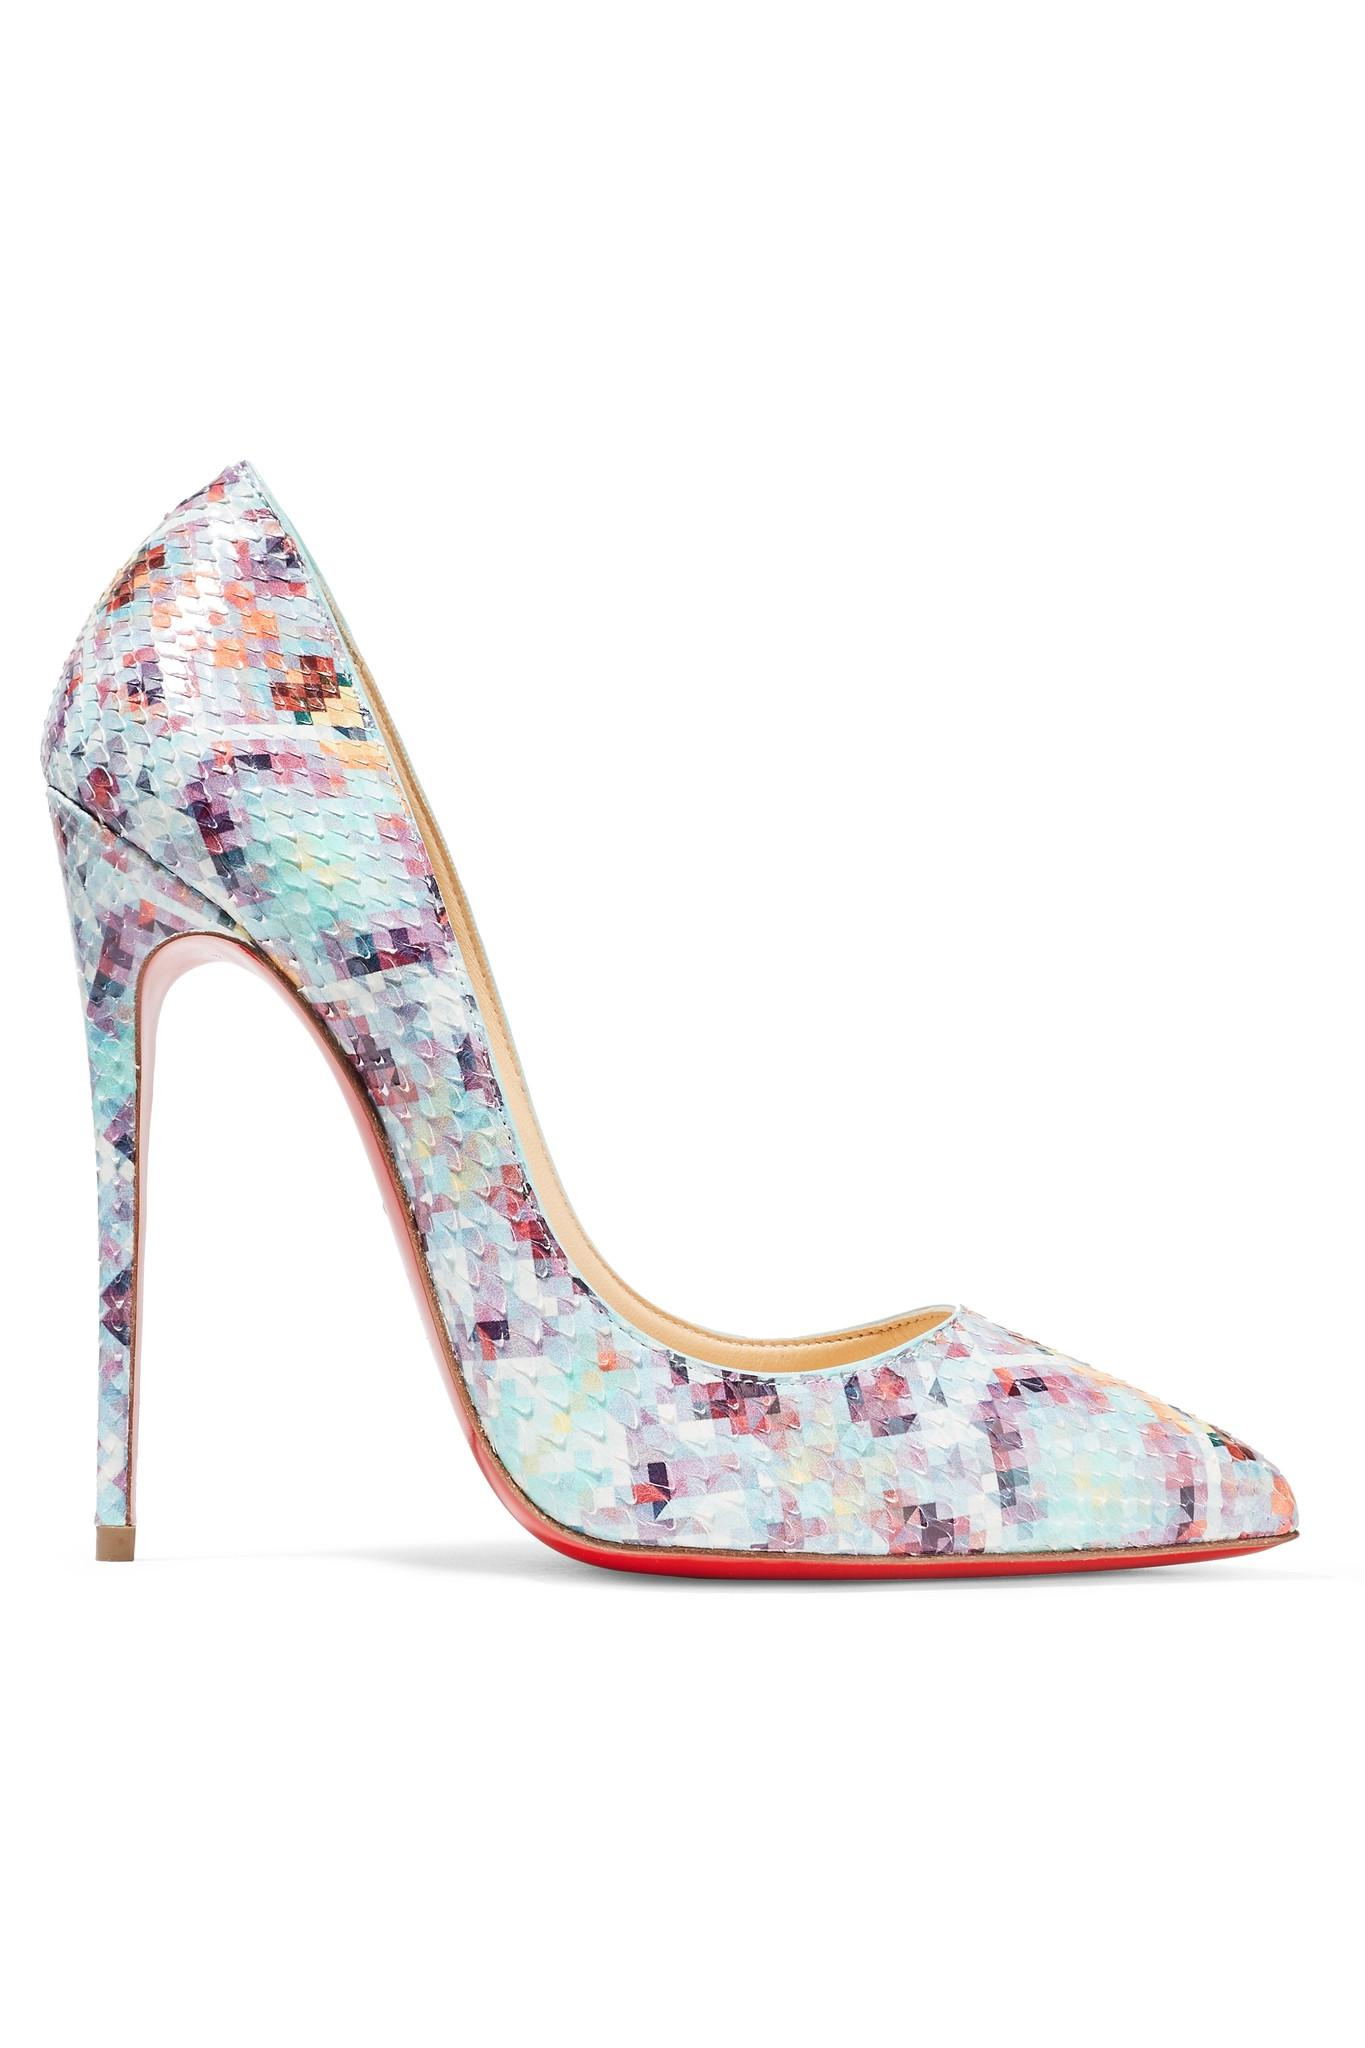 f27bd75f65b9 Lyst - Christian louboutin Pigalle Follies Printed Snakeskin Court Shoes in  Blue